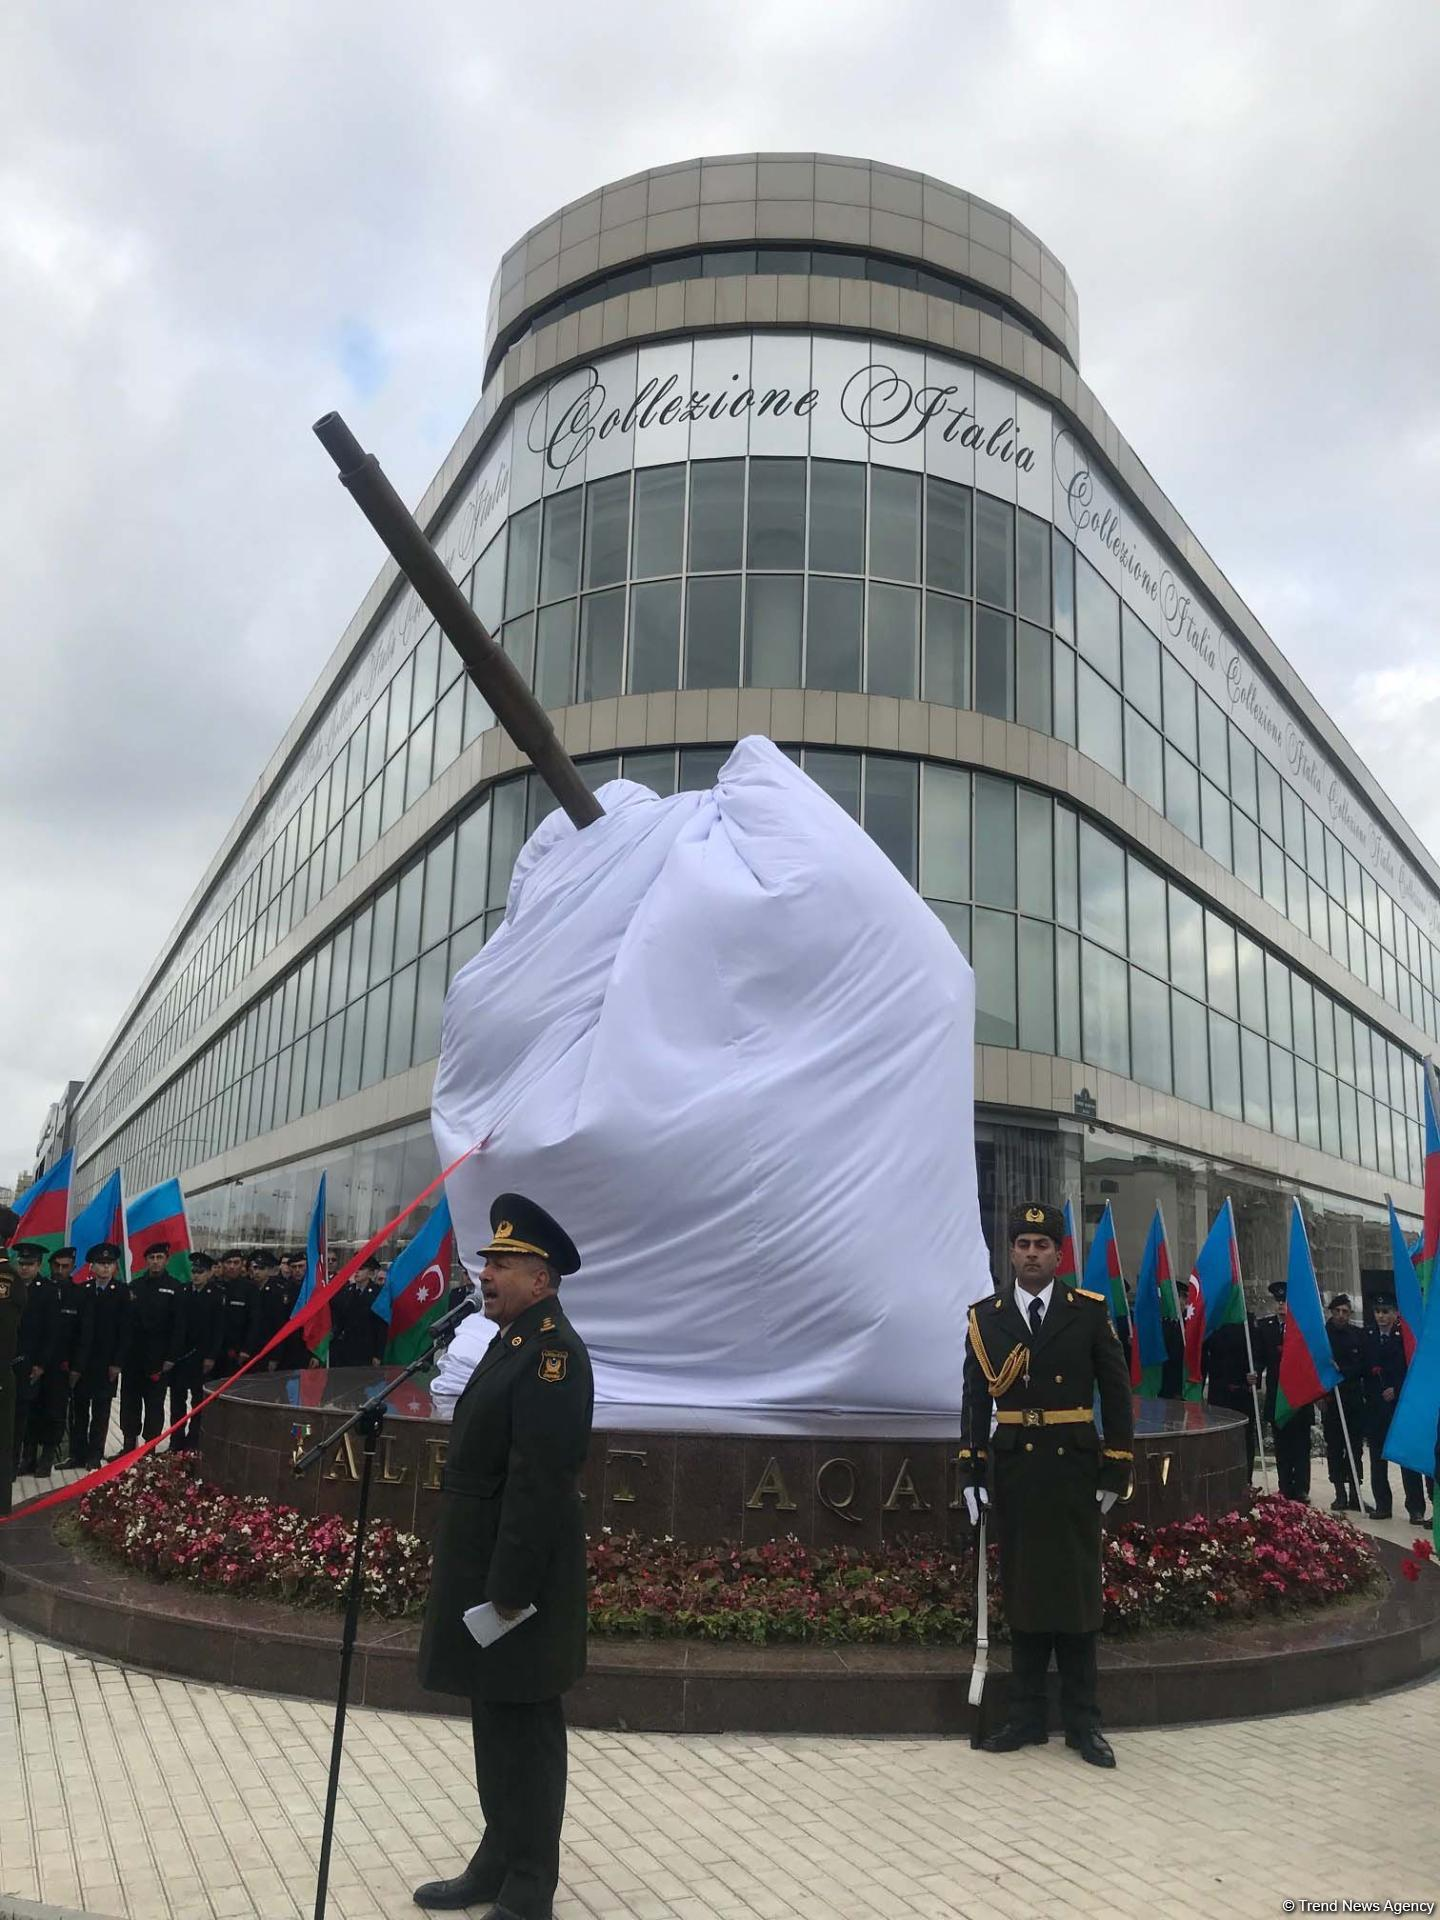 Monument to Azerbaijan's National Hero Albert Agarunov opens in Baku (PHOTO)